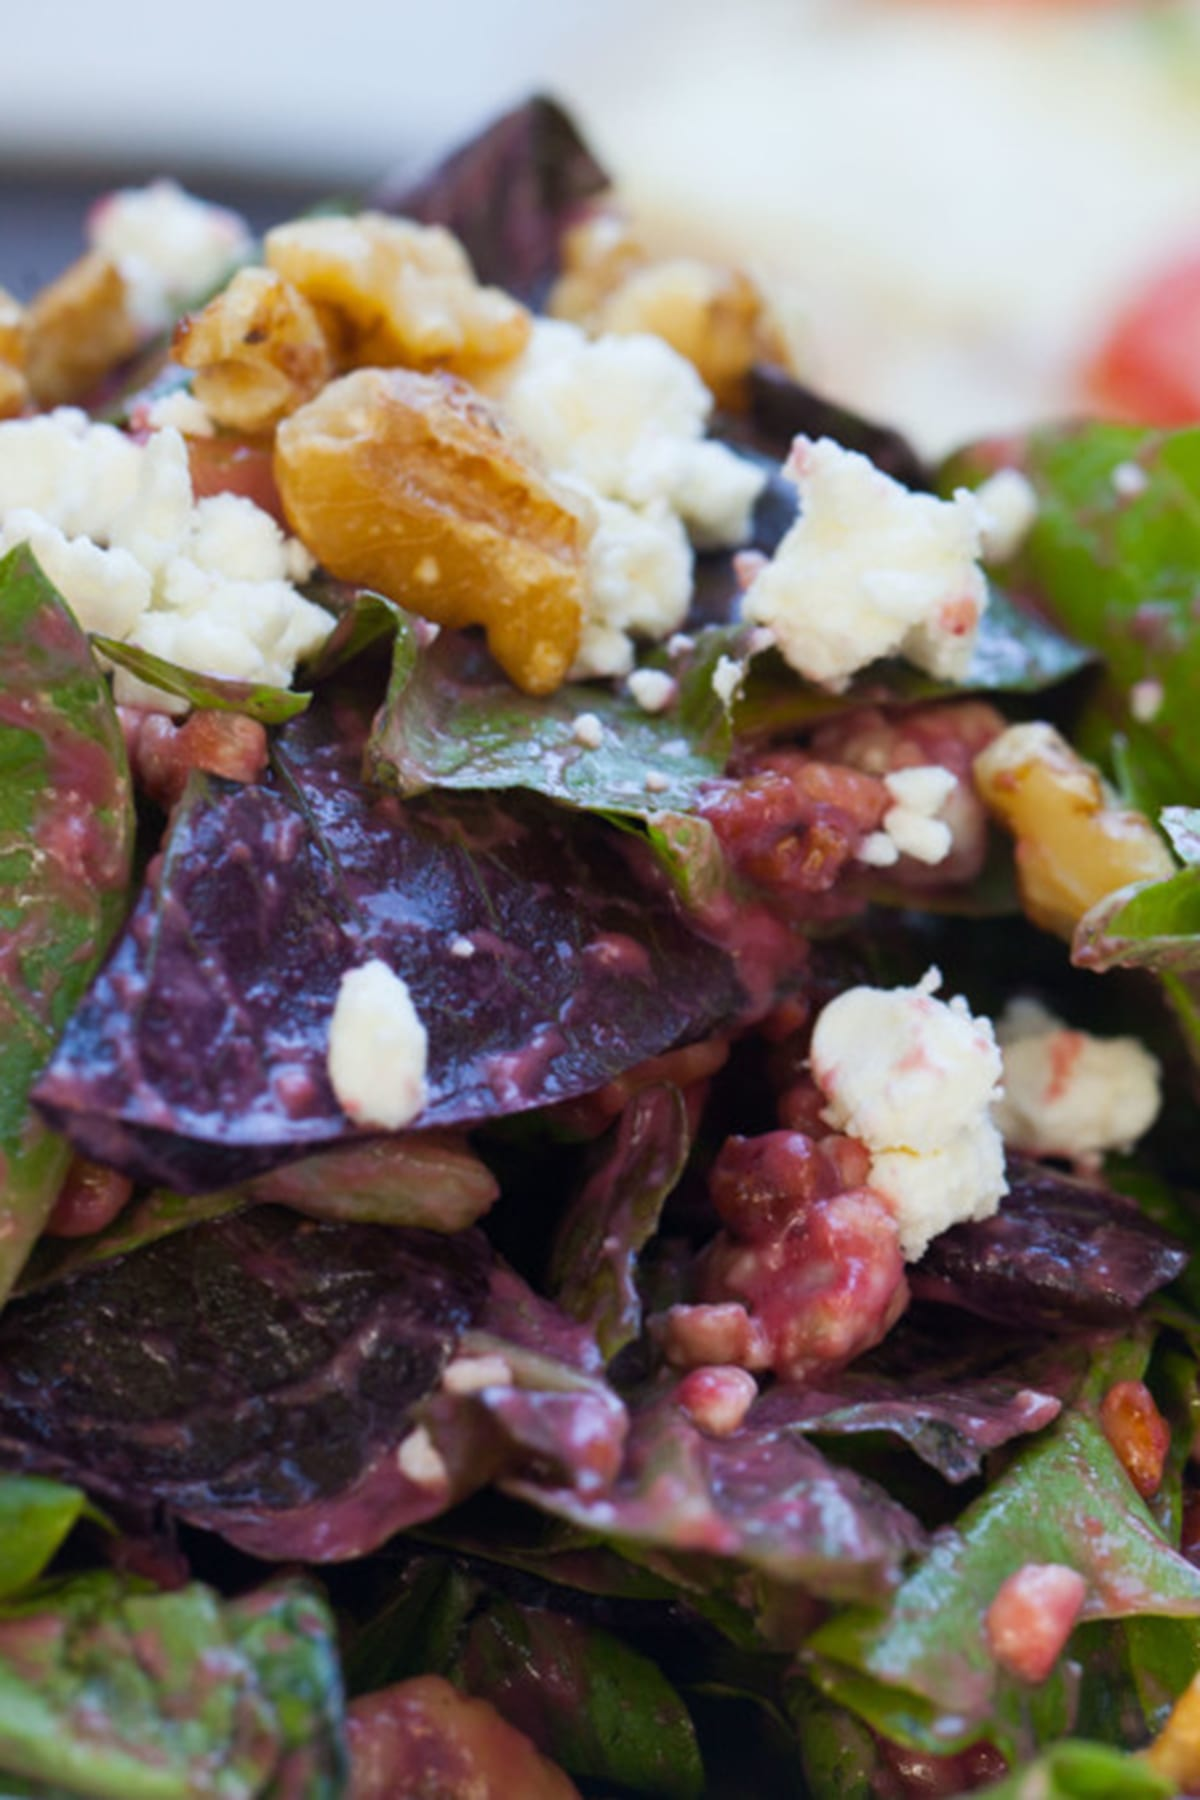 Mixed greens with pears and gorgonzola